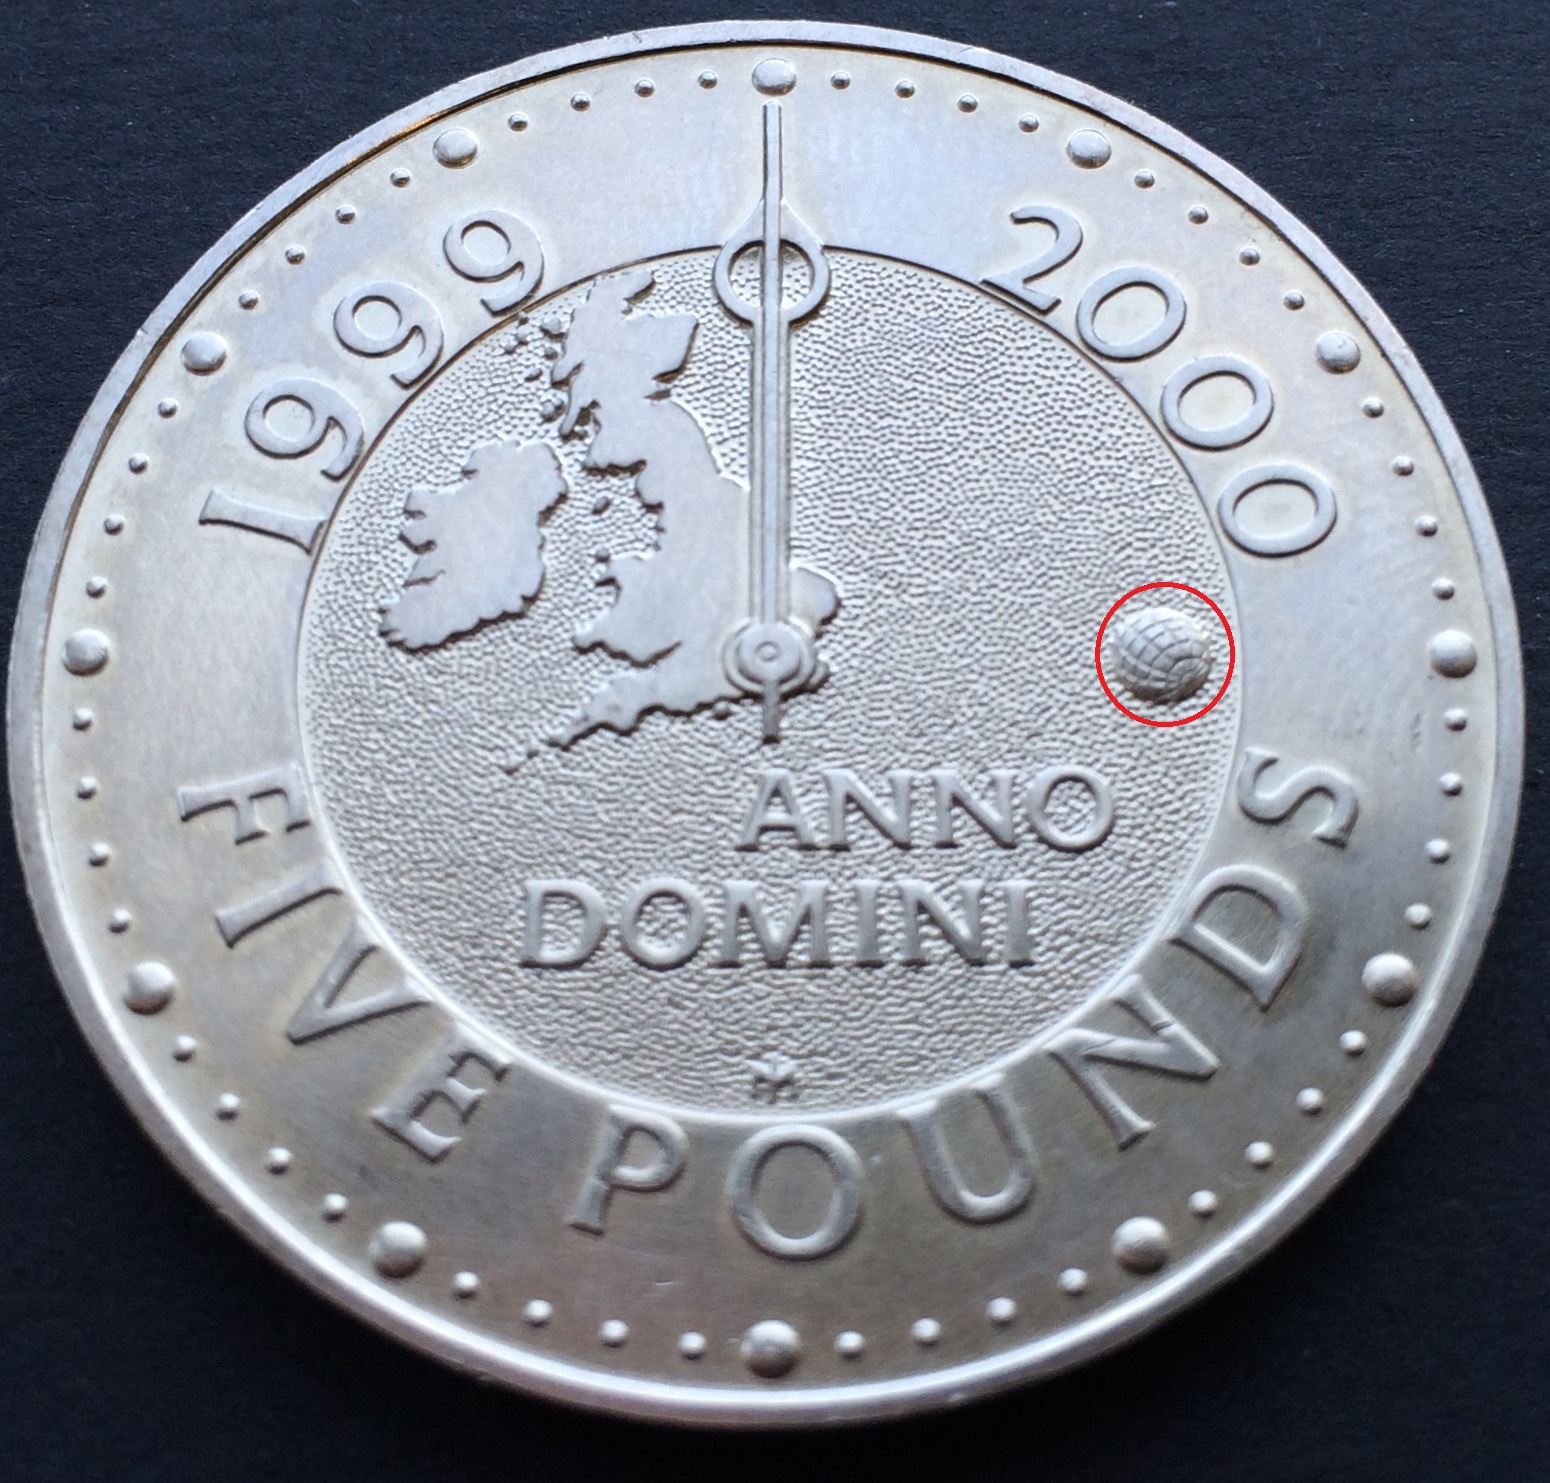 millennium - £5 Coins - My top 5 designs